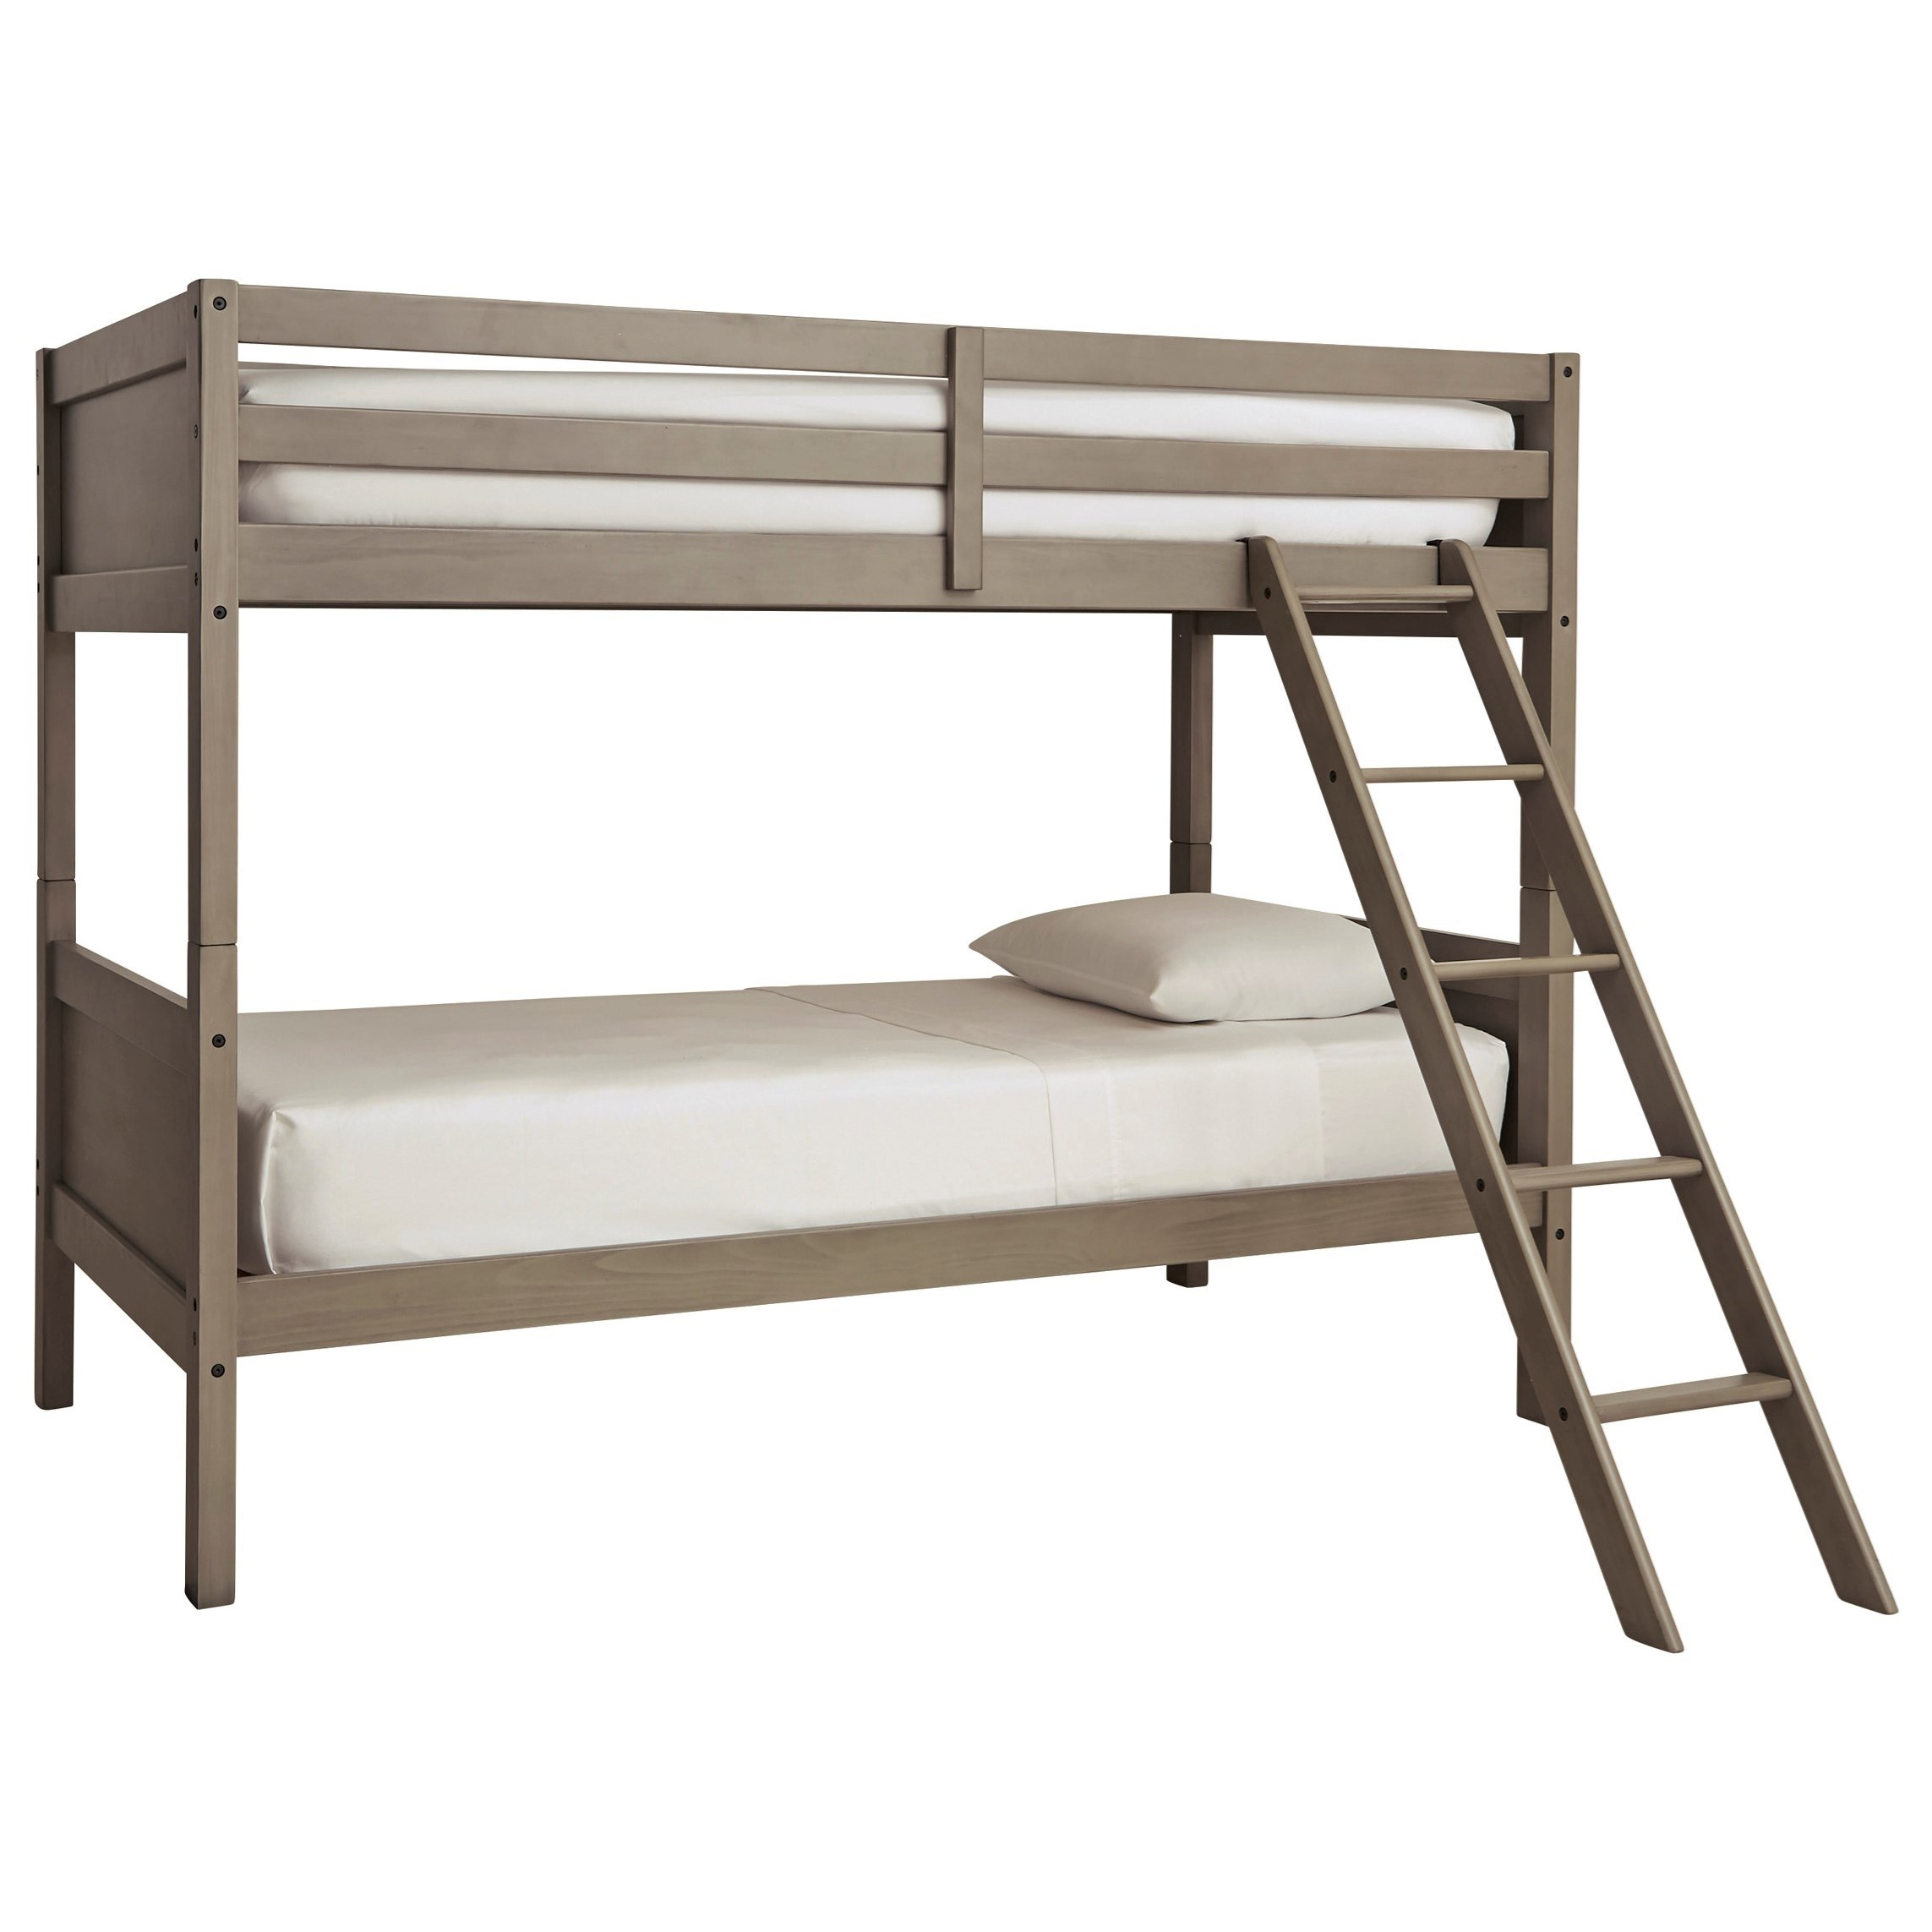 Lettner Twin/Twin Bunk Bed w/ Ladder by Signature Design by Ashley at Beck's Furniture